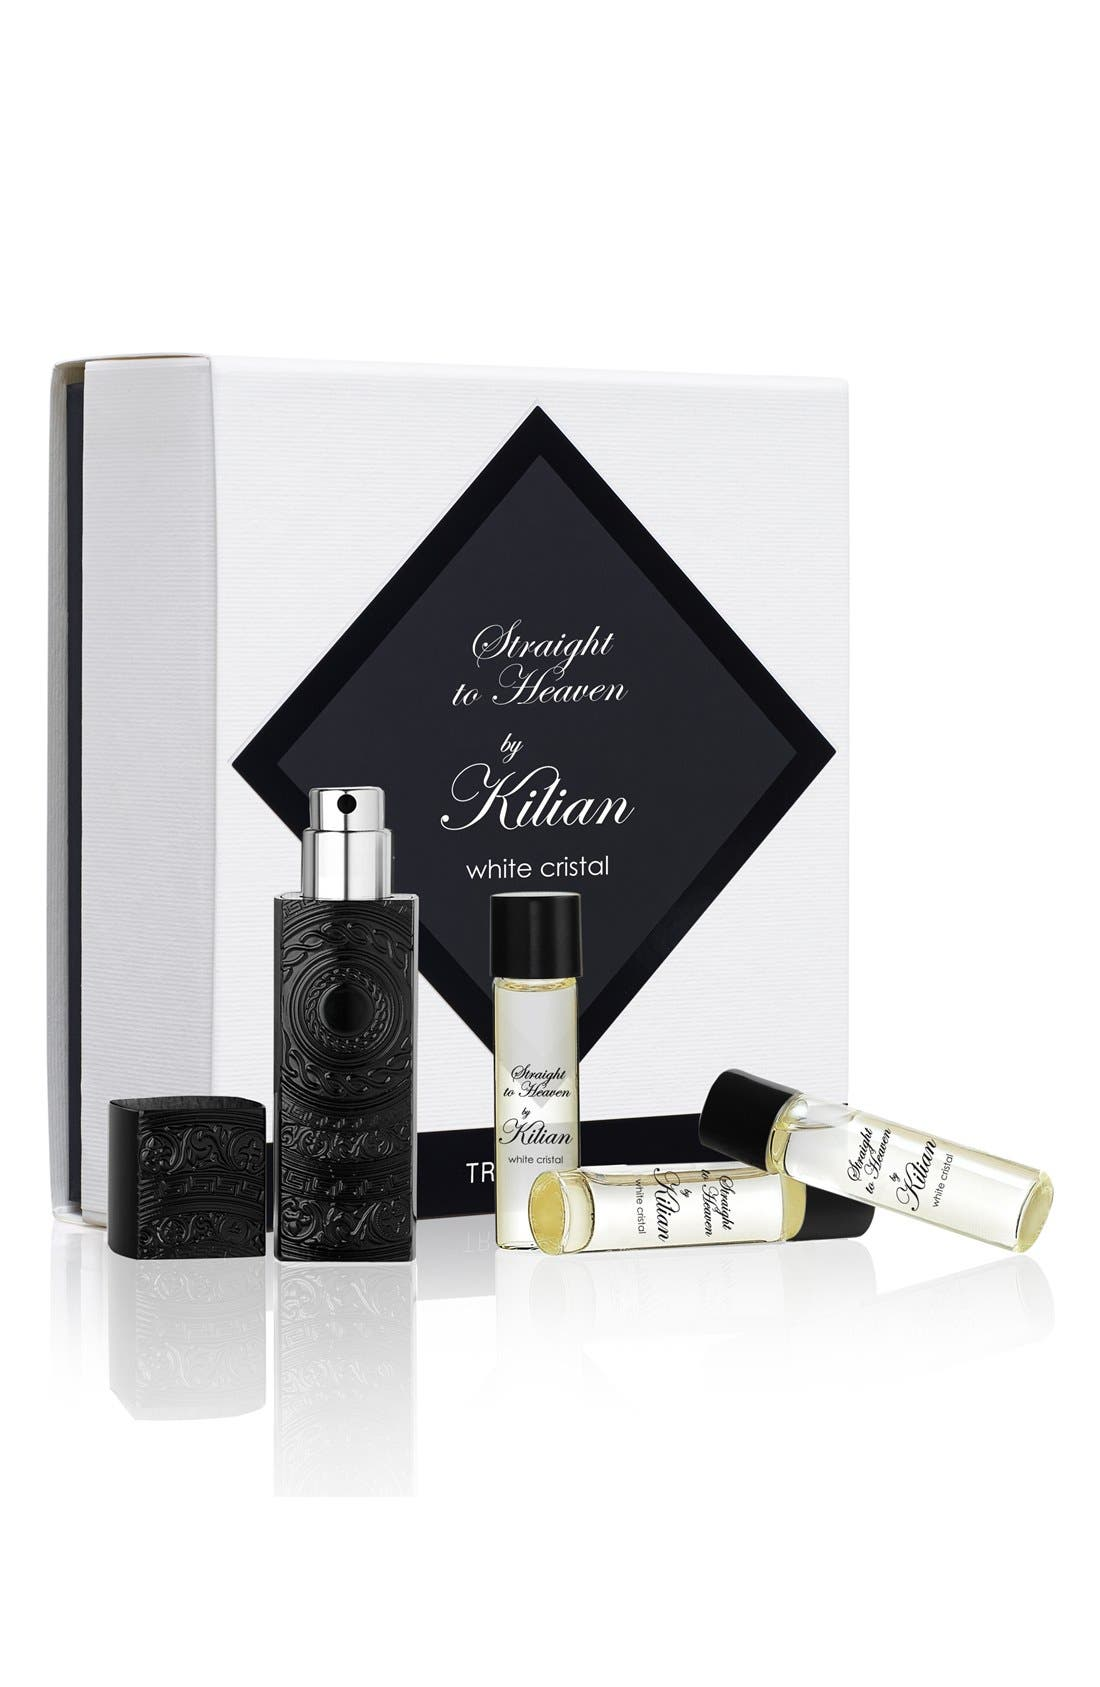 Kilian 'L'Oeuvre Noire - Straight to Heaven, white cristal' Travel Set